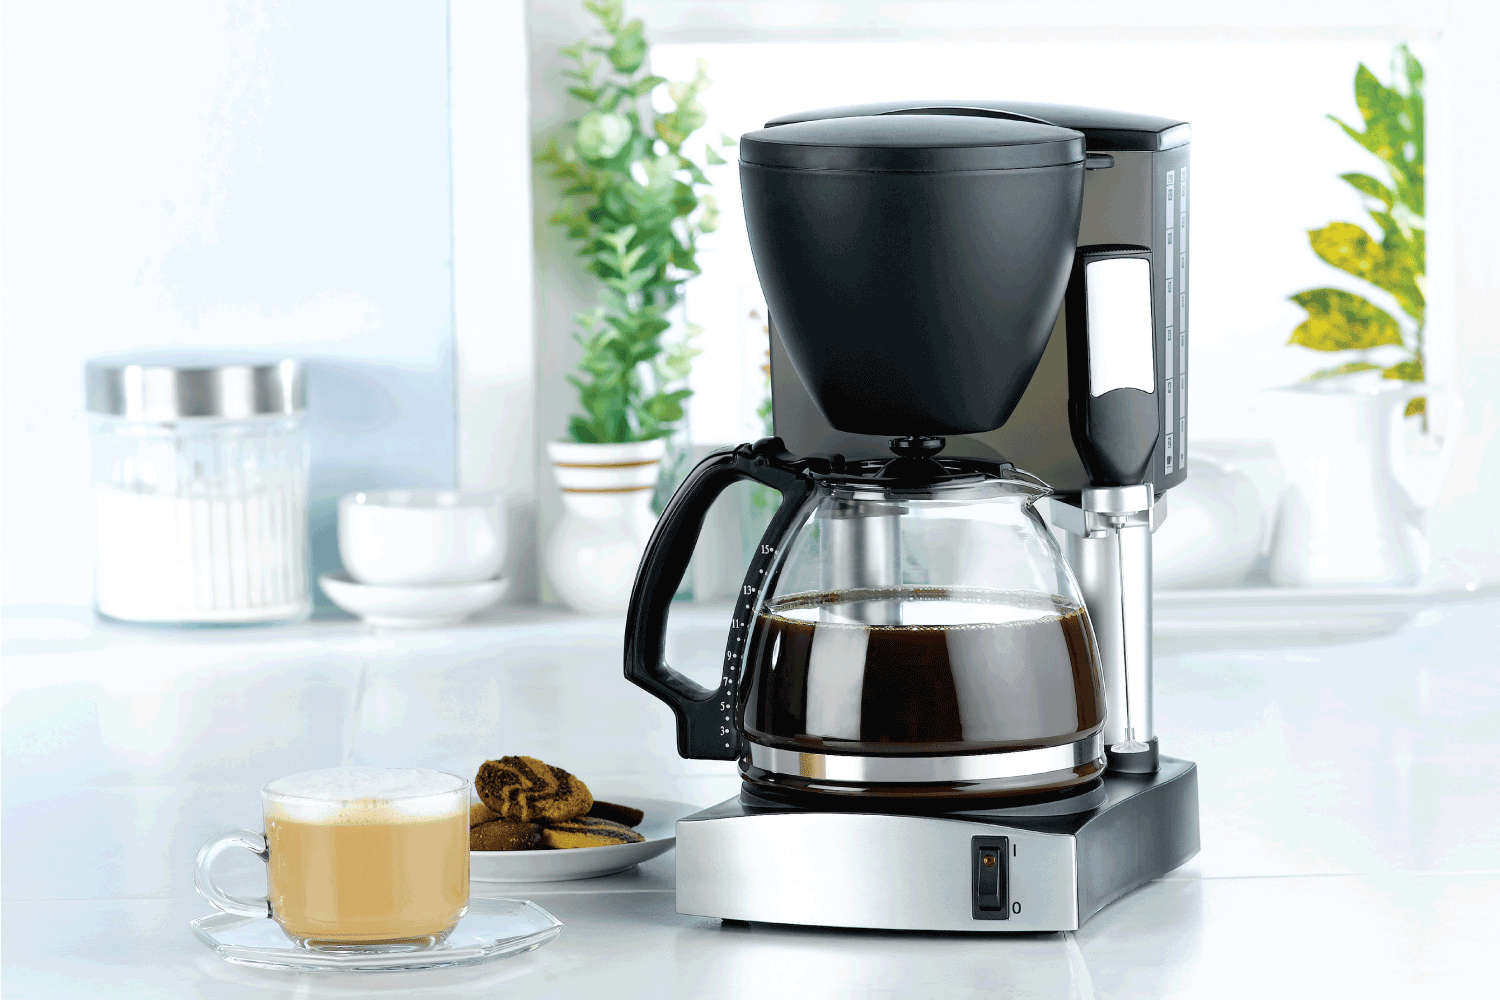 Coffee blender and boiler machine great for makes hot drinks in the kitchen